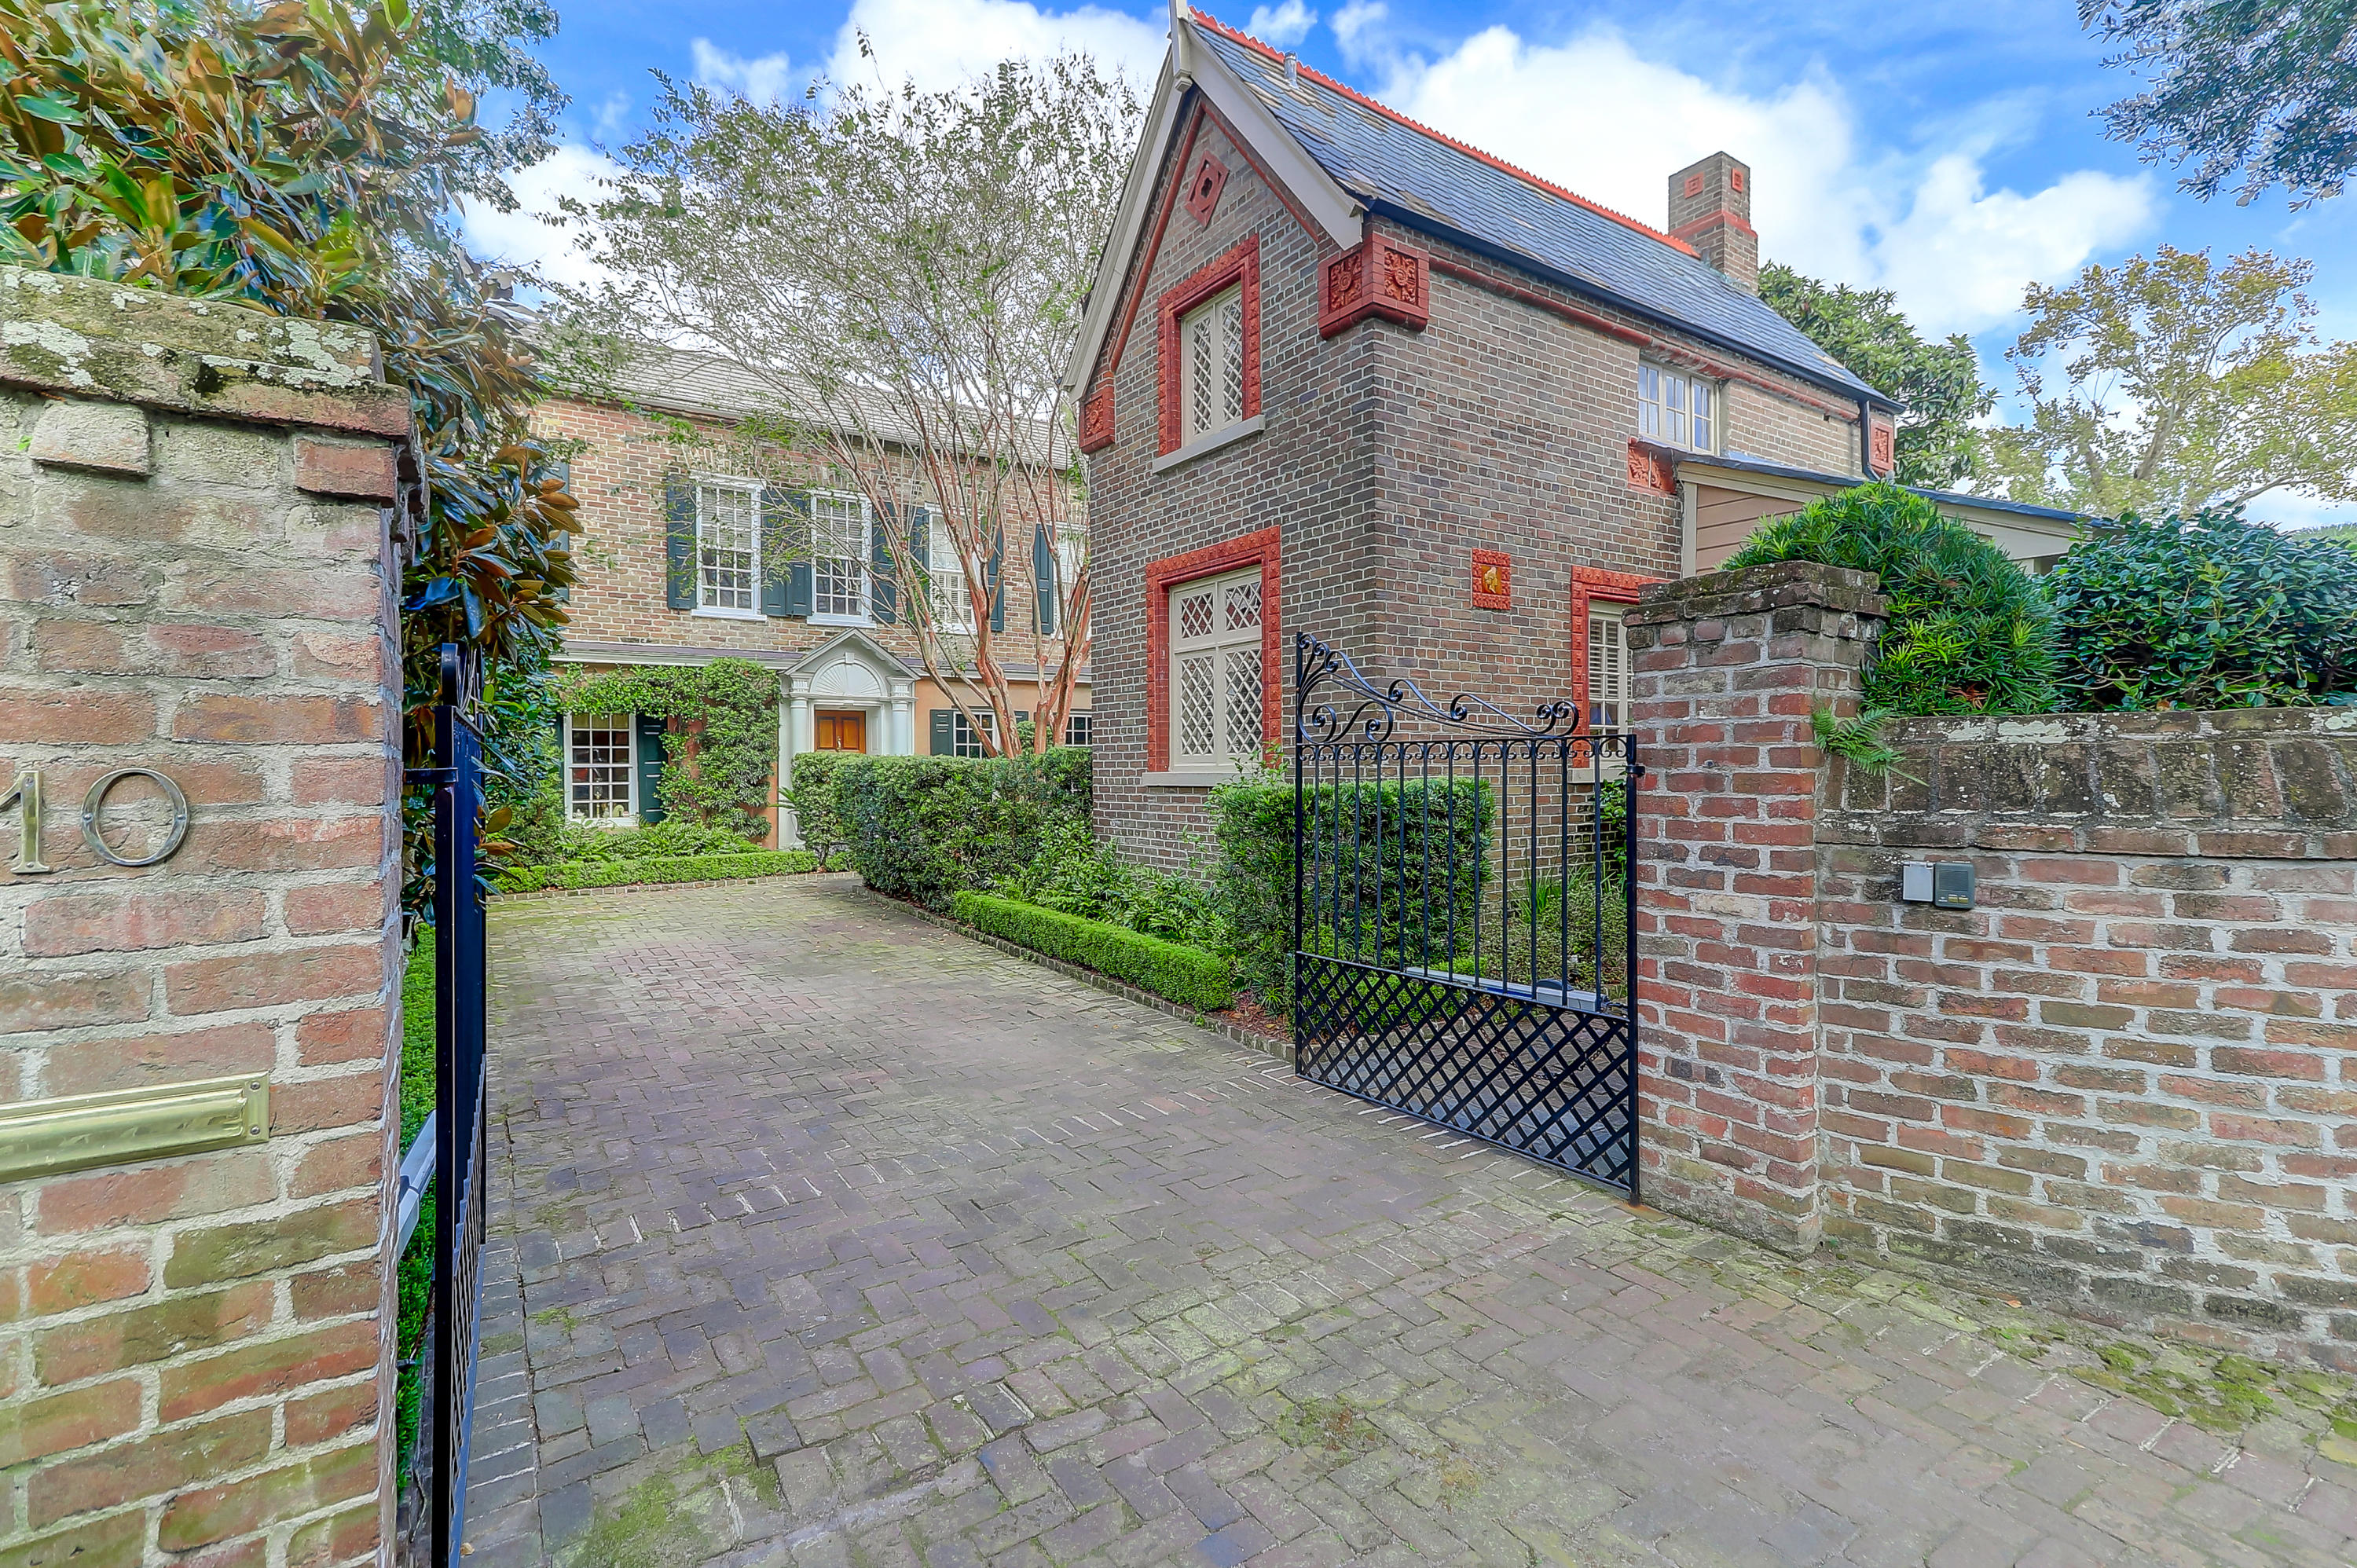 8/10 Ropemakers Lane Charleston $1,999,000.00